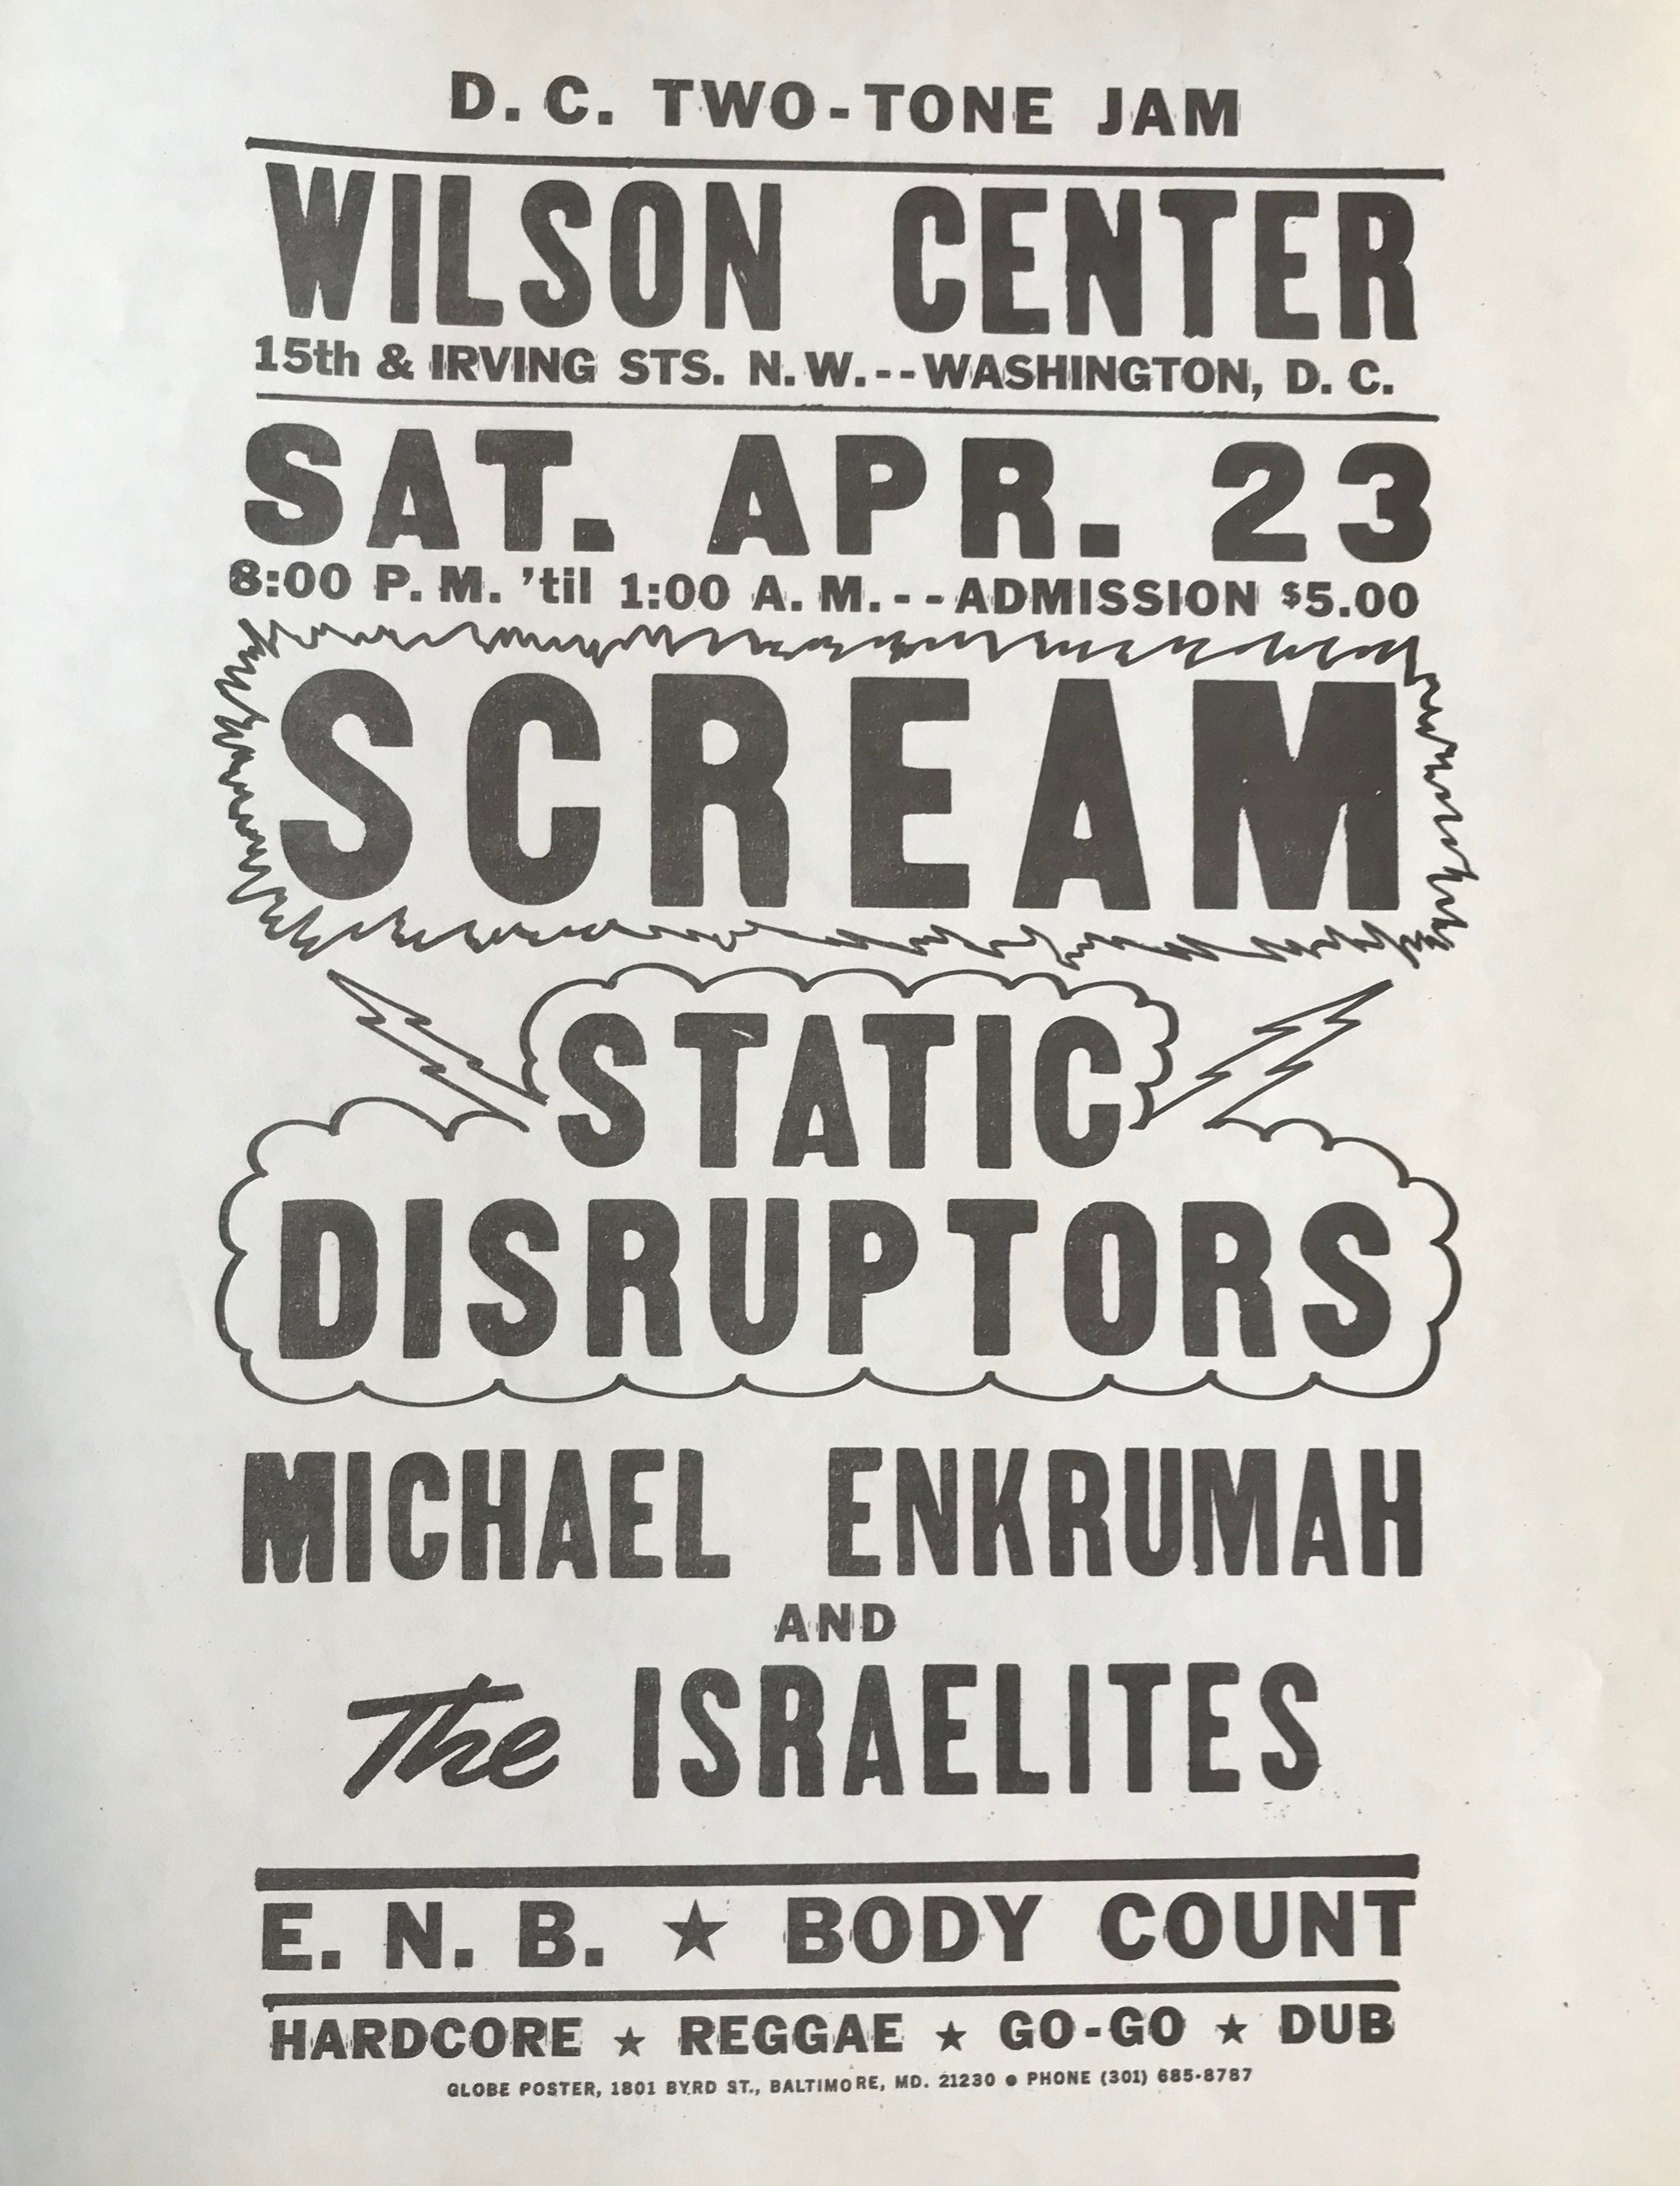 Scream Static Disrupters Flyer